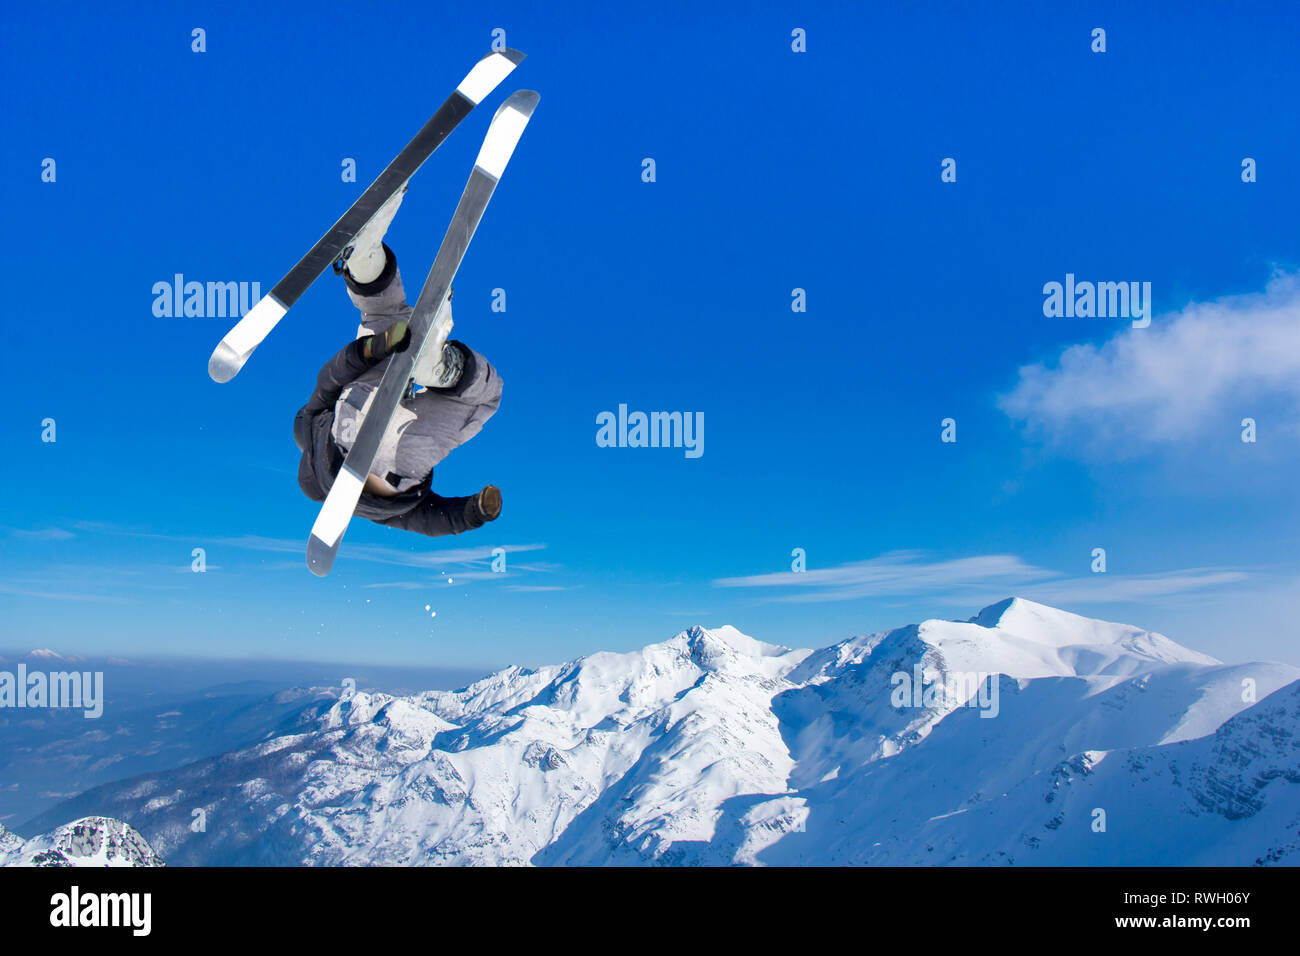 Extreme Jumping skier at jump above mountains at sunny day - Stock Image